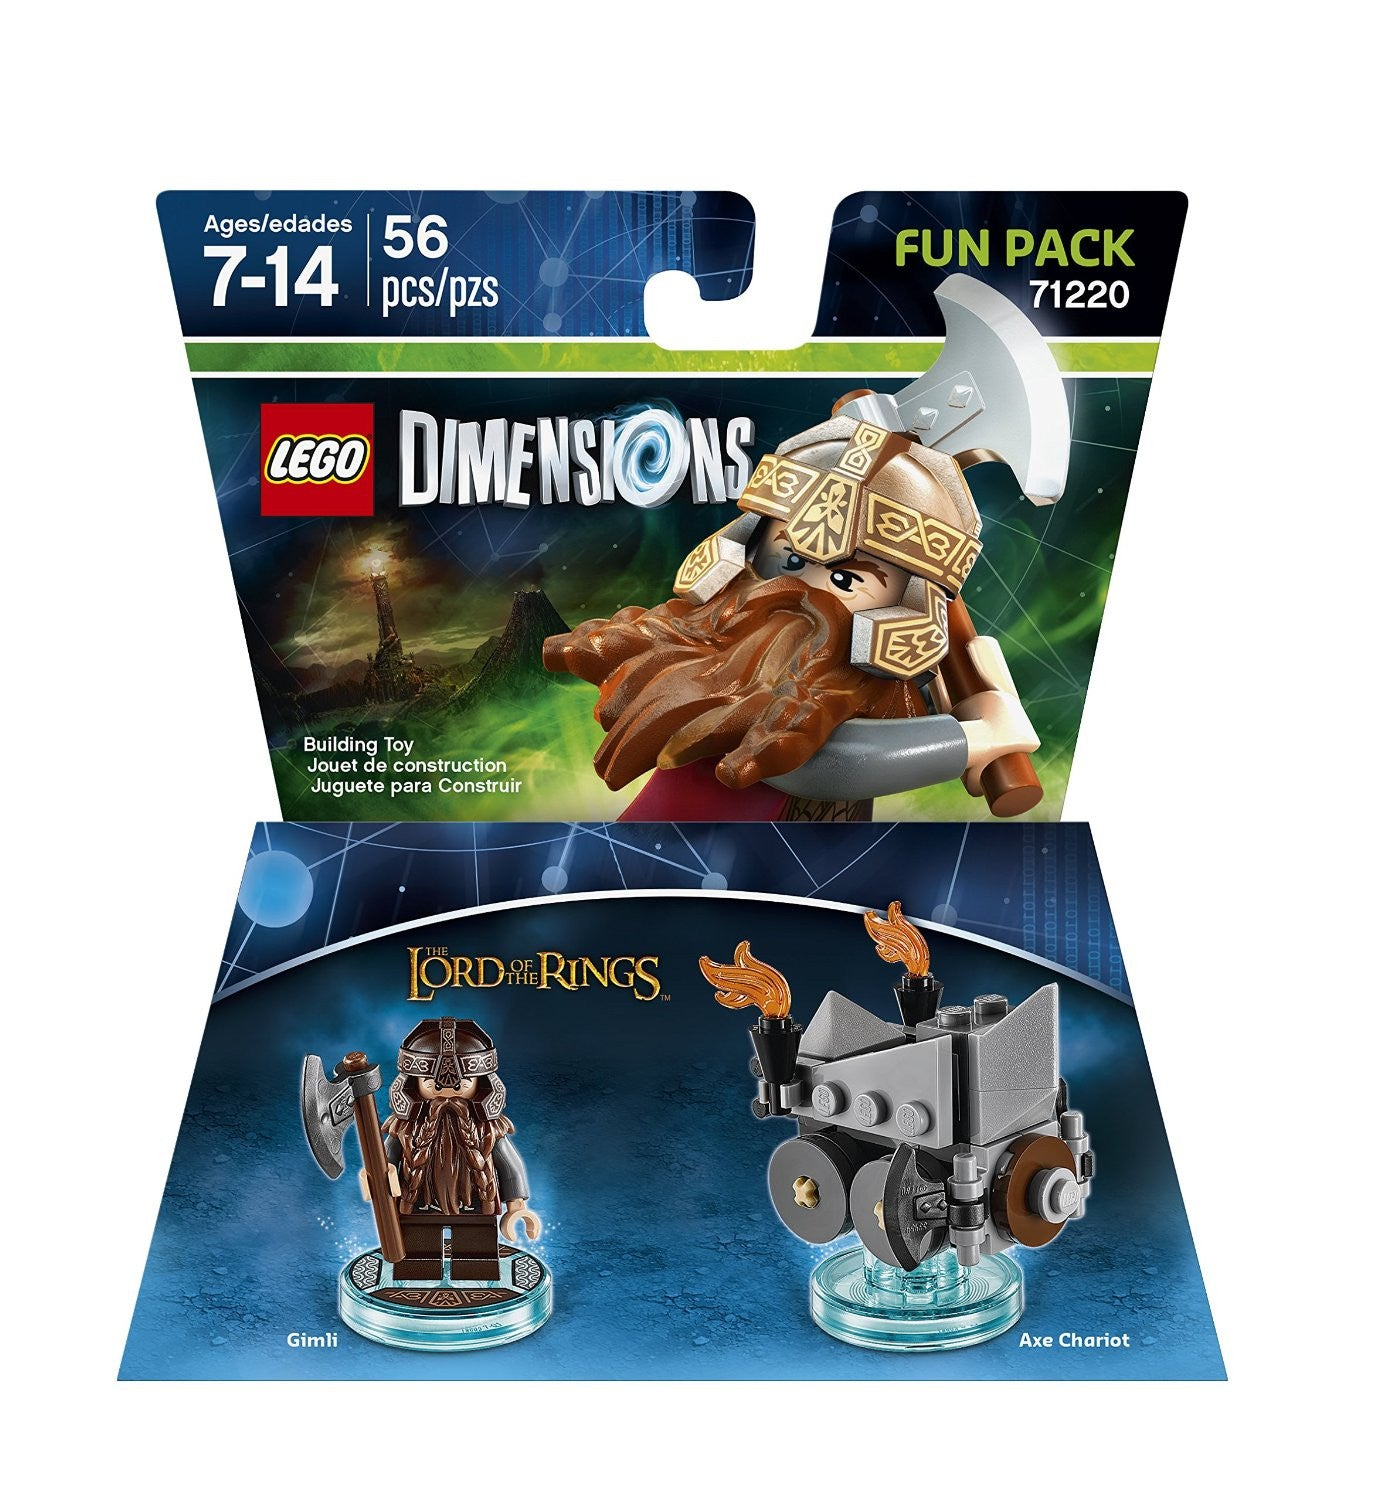 LEGO Dimensions Fun Pack - GIMLI - Lord of the Rings 71220